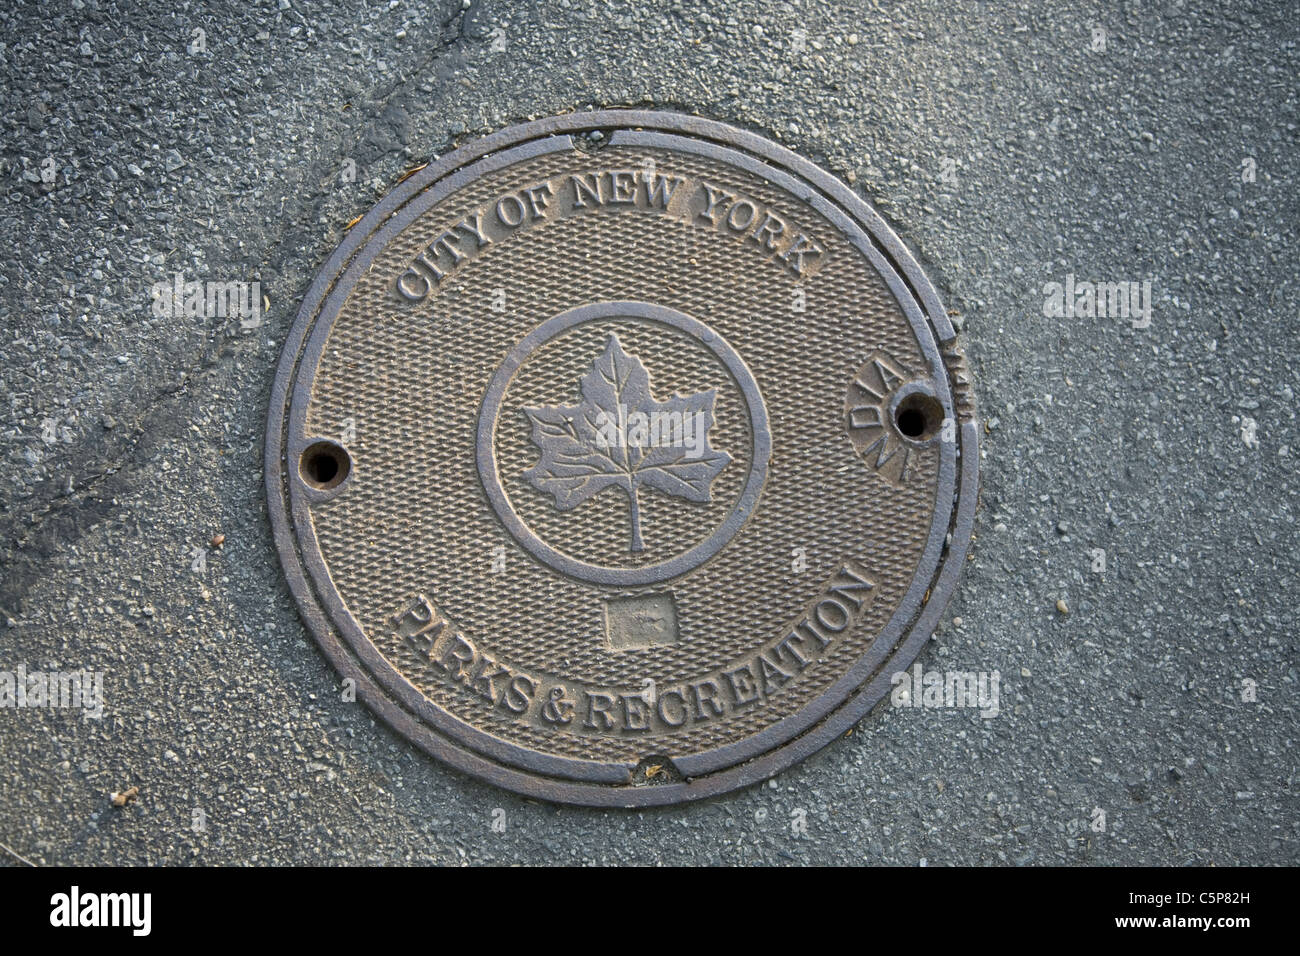 Manhole cover made in India on a road in Prospect Park, Brooklyn, NY. - Stock Image